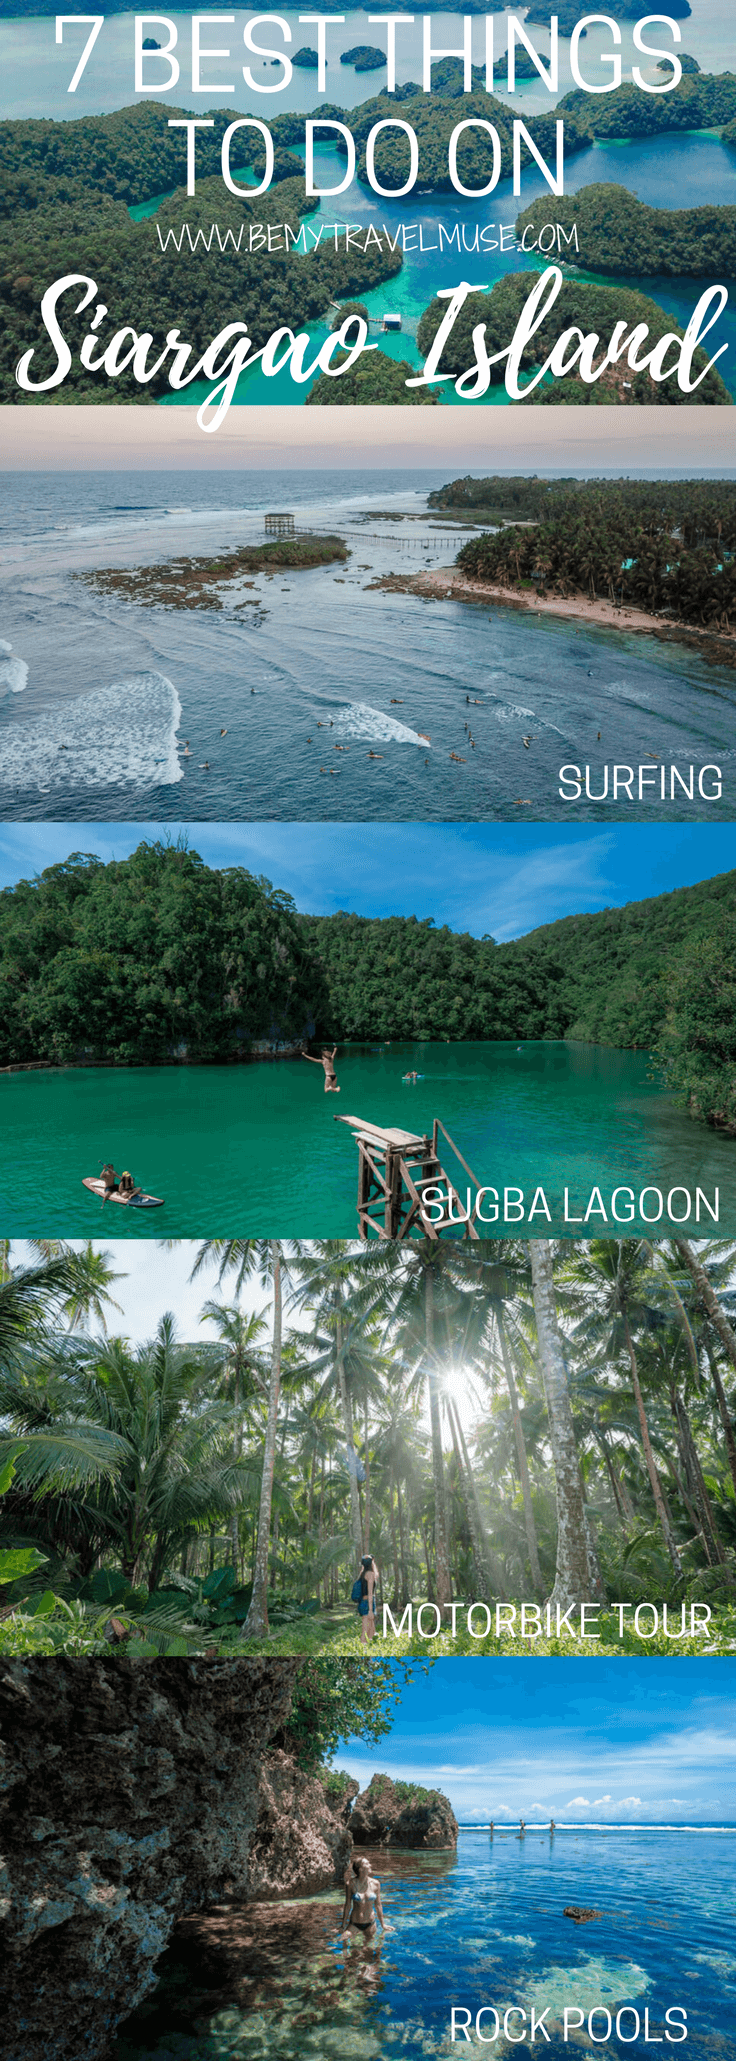 Here are the 7 awesome things to do on Siargao Island, Philippines, with additional information that will make it an awesome itinerary for your Siargao Island adventure! Be My Travel Muse | Solo female travel | Sugba Lagoon | Magpupungko Rock Pools | Philippines island travel